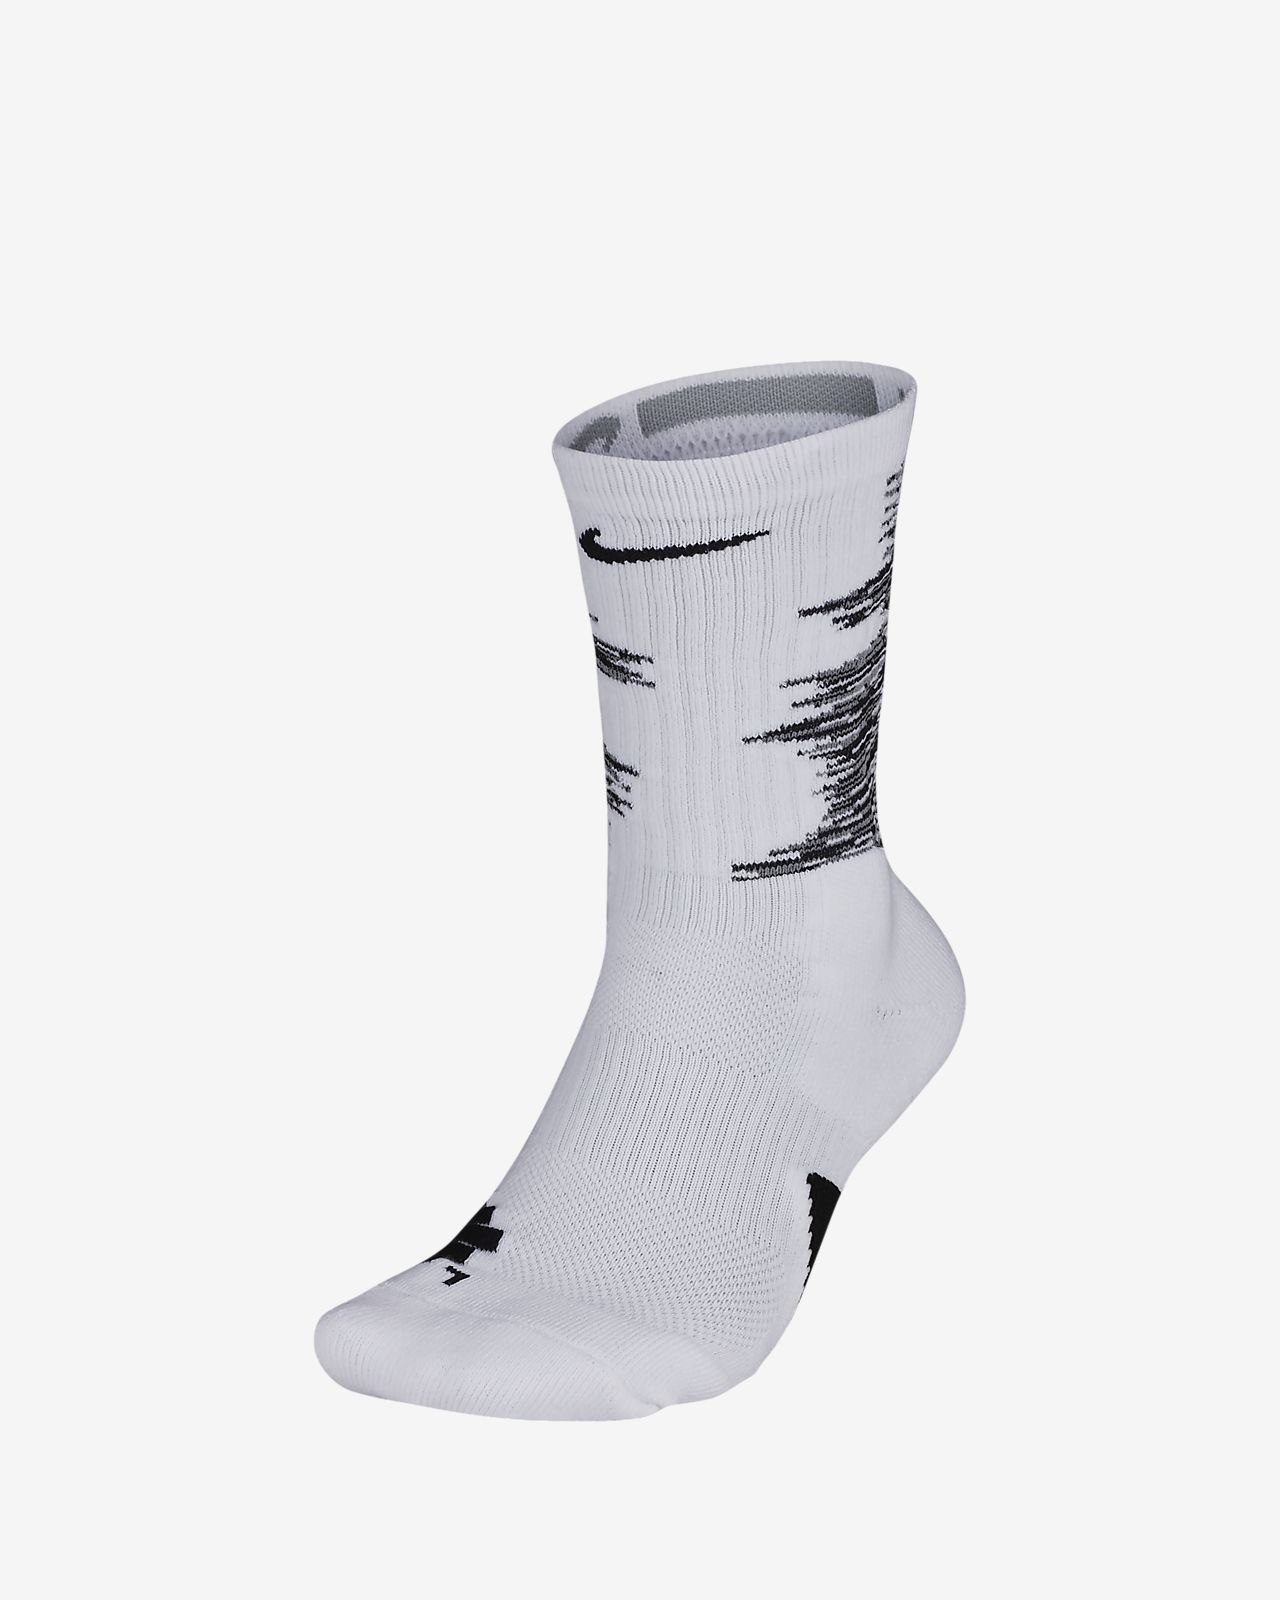 f0548154d6c Nike Elite Basketball Crew Socks. Nike.com